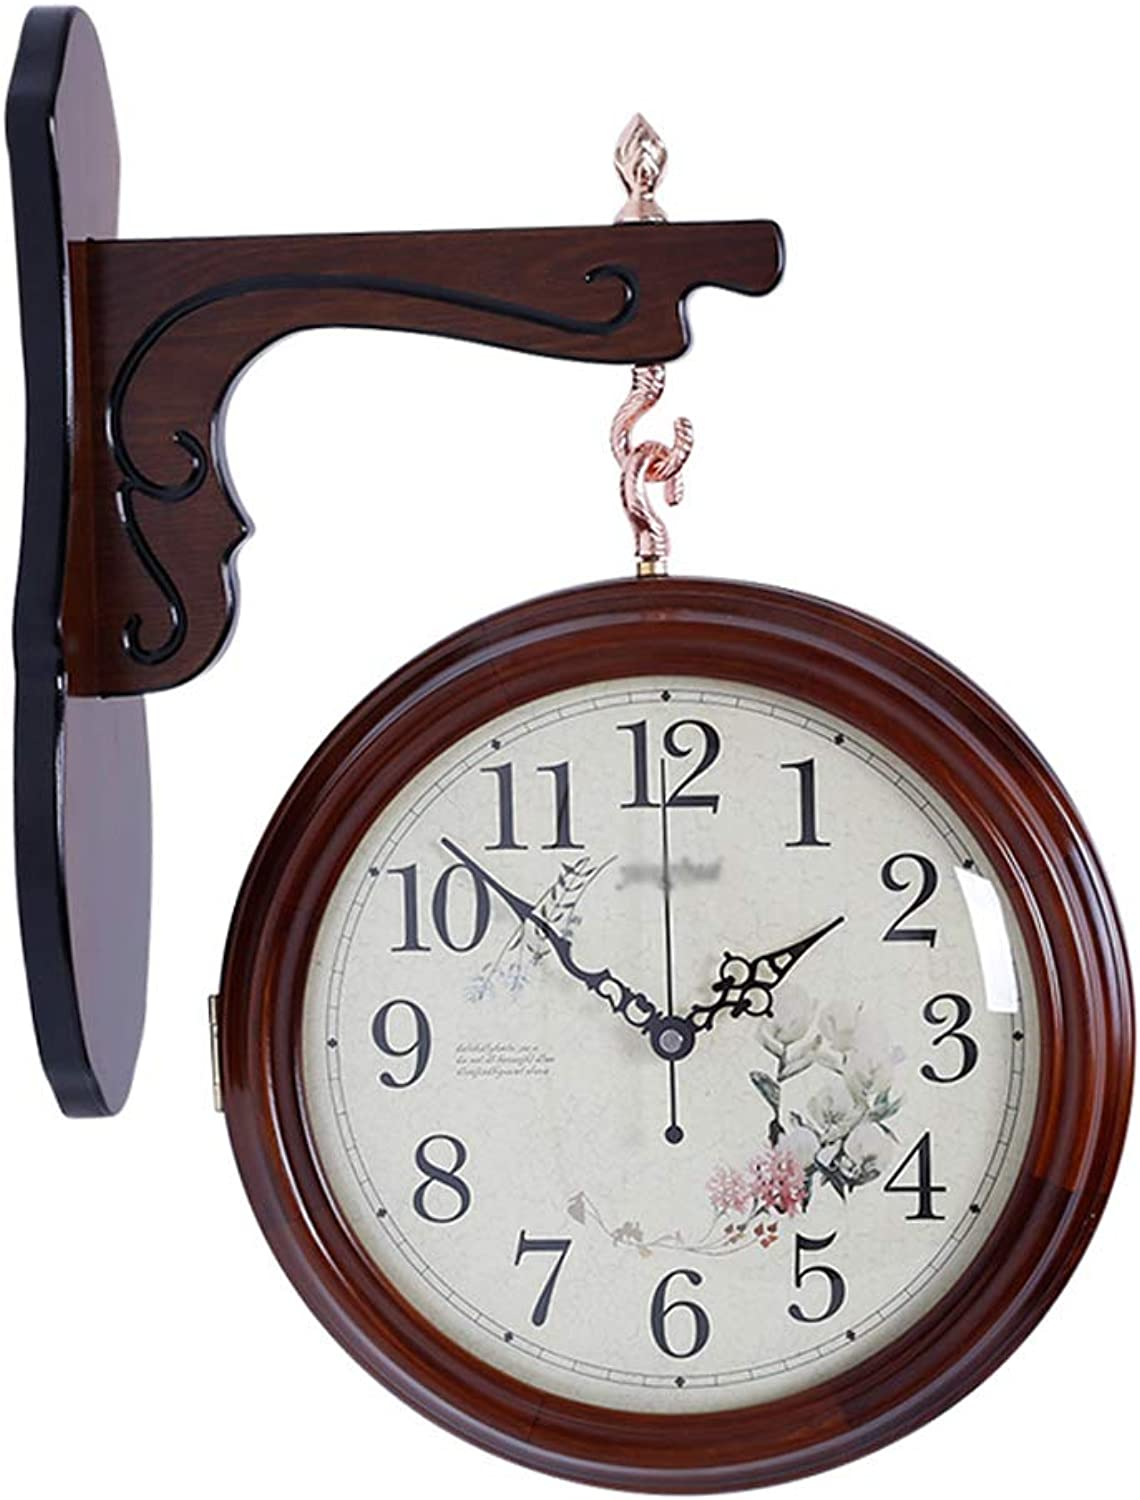 YONGMEI Wall Clock - Solid Wood Double-Sided Wall Clock Quartz Clock Mute Living Room Restaurant high-end Wall Clock Creative Modern Table (color   Brown, Size   51  40cm)